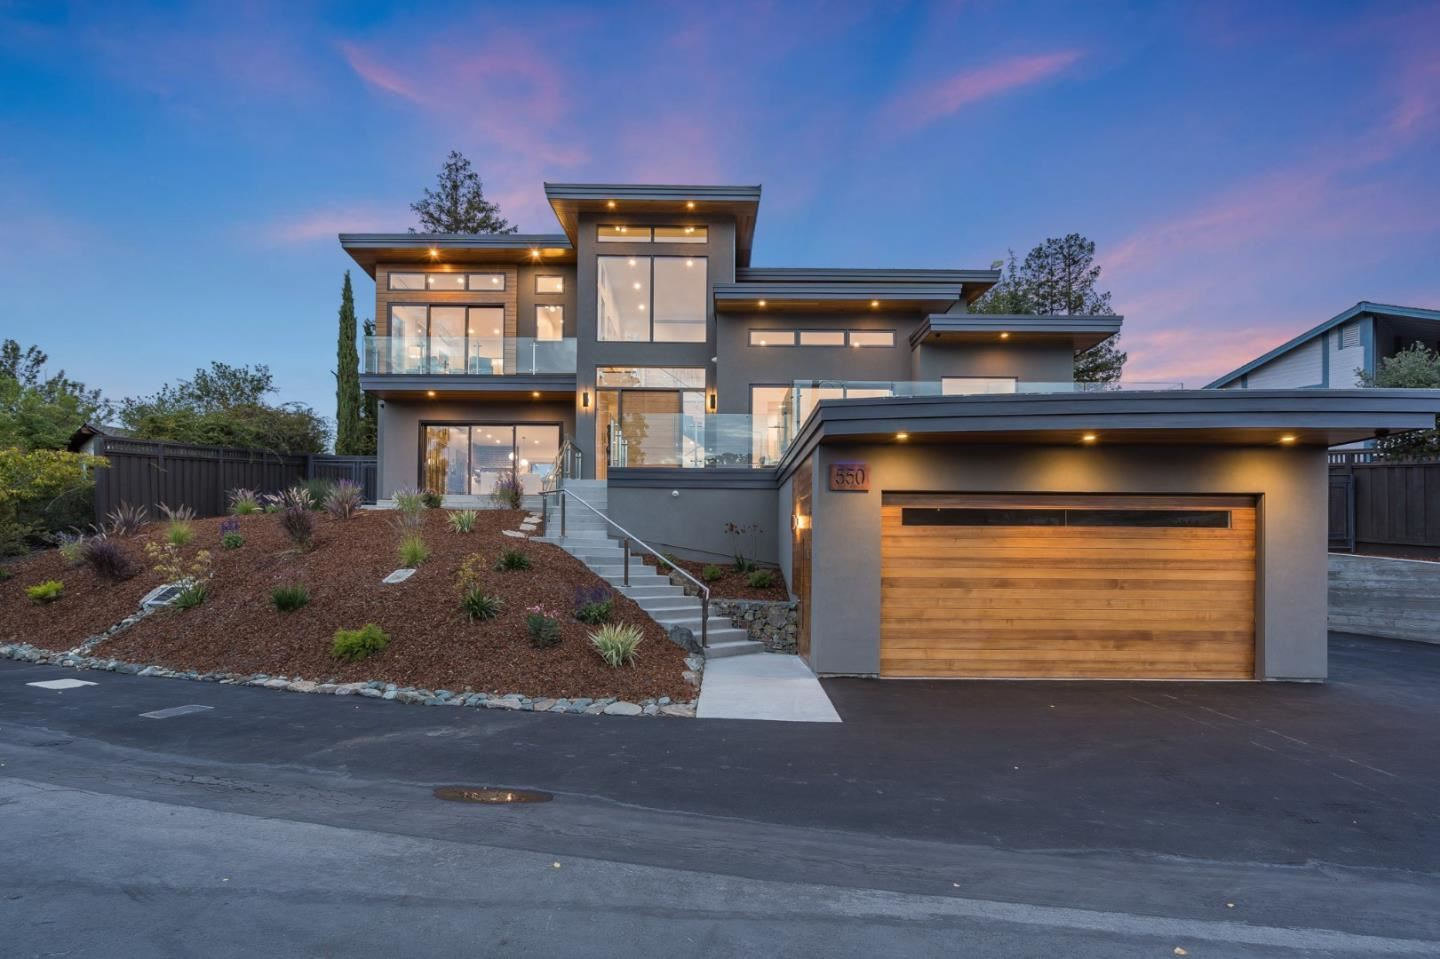 550 Lakeview Way, Redwood City, CA 94062 - #: ML81849631